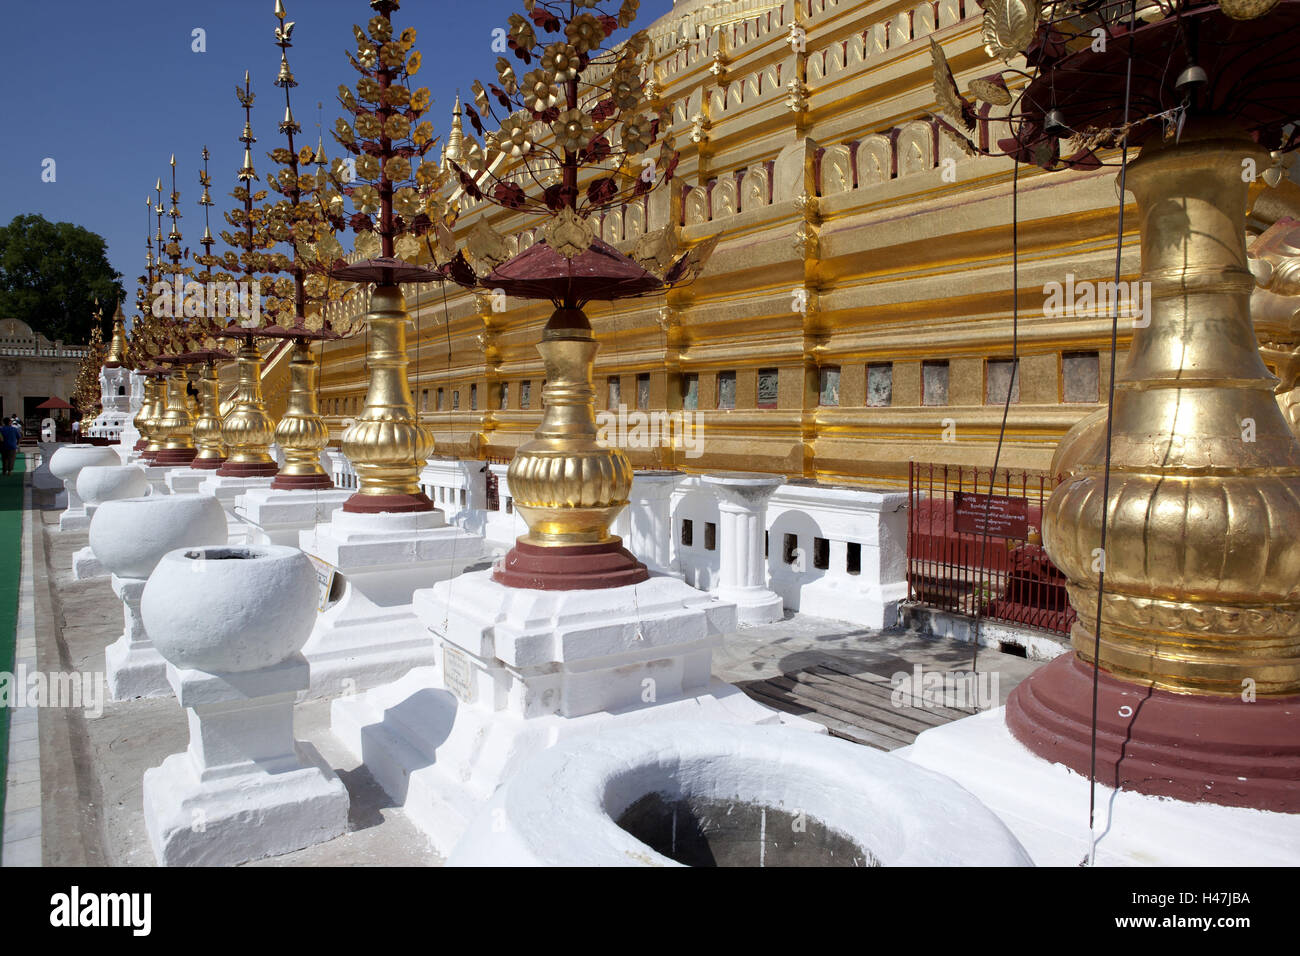 Myanmar, Bagan, Shwezigon pagoda, Stock Photo